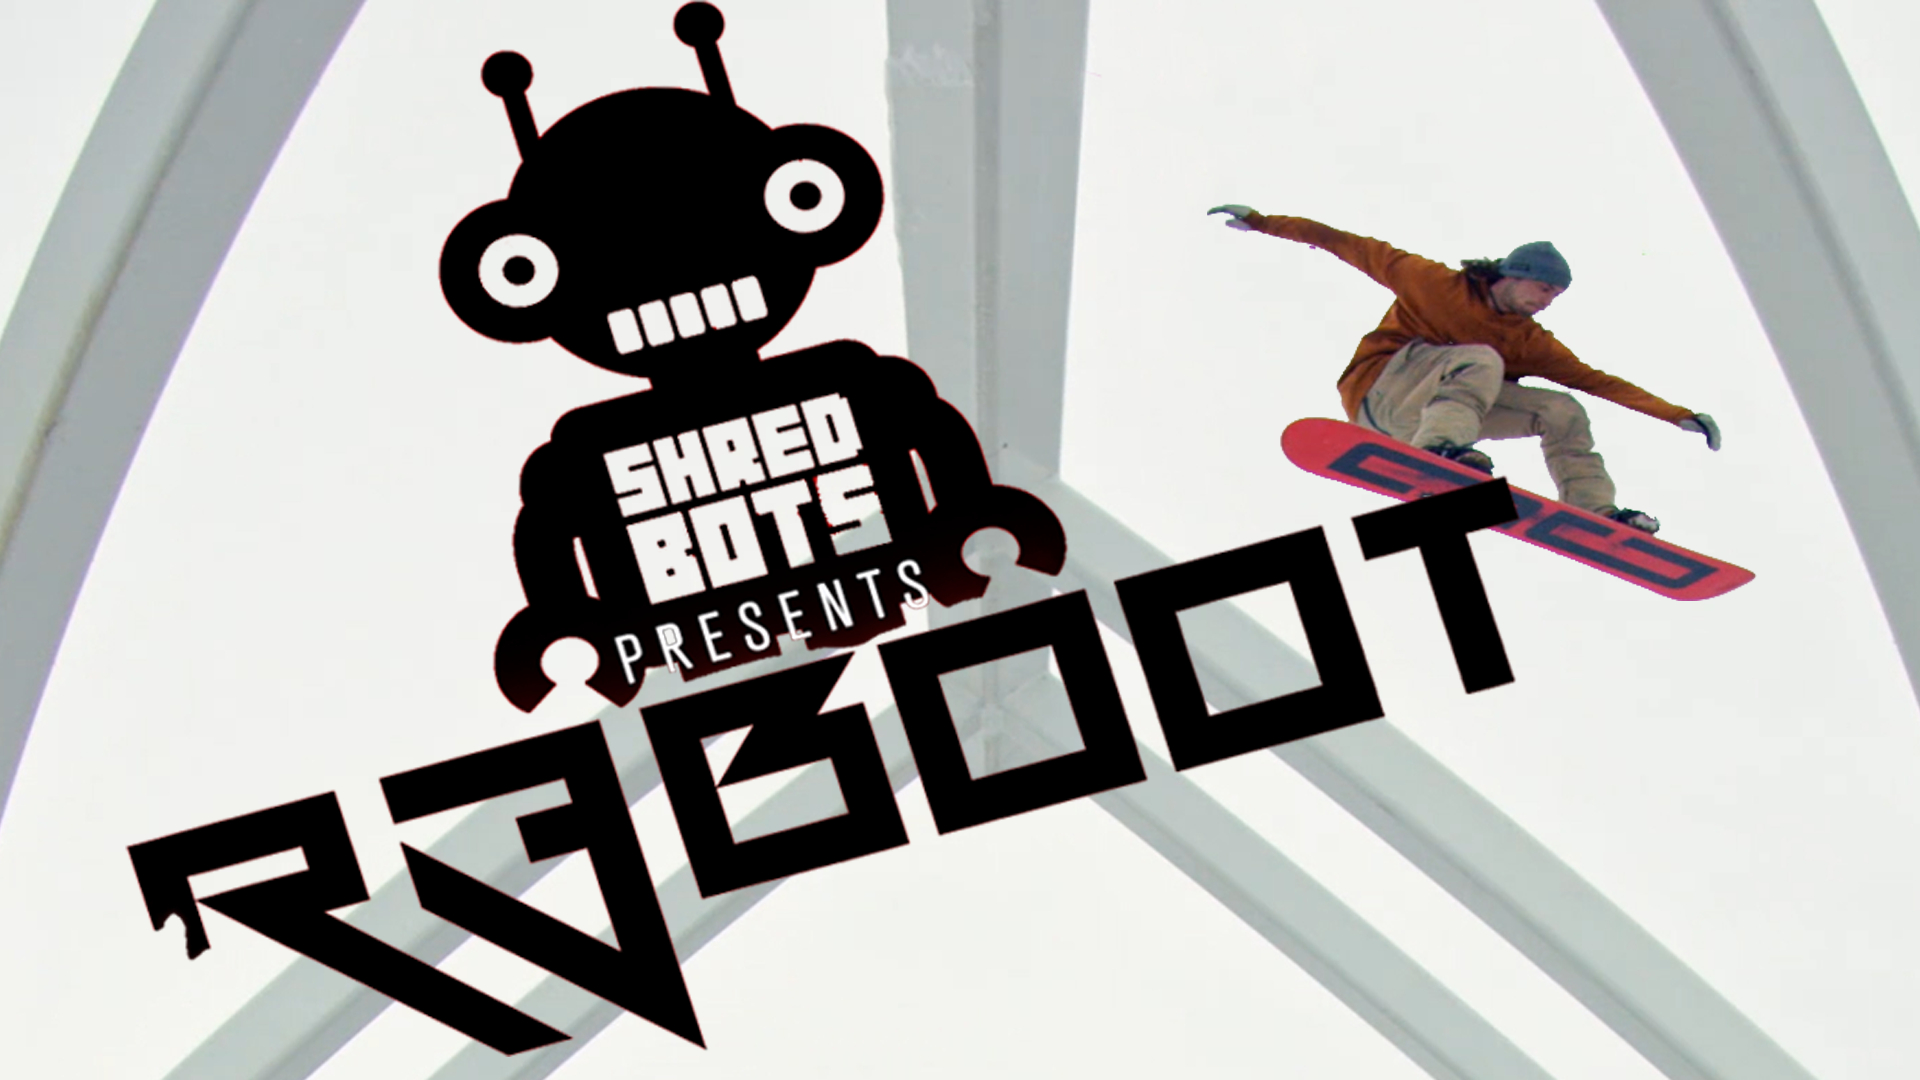 Shred Bots: R3boot